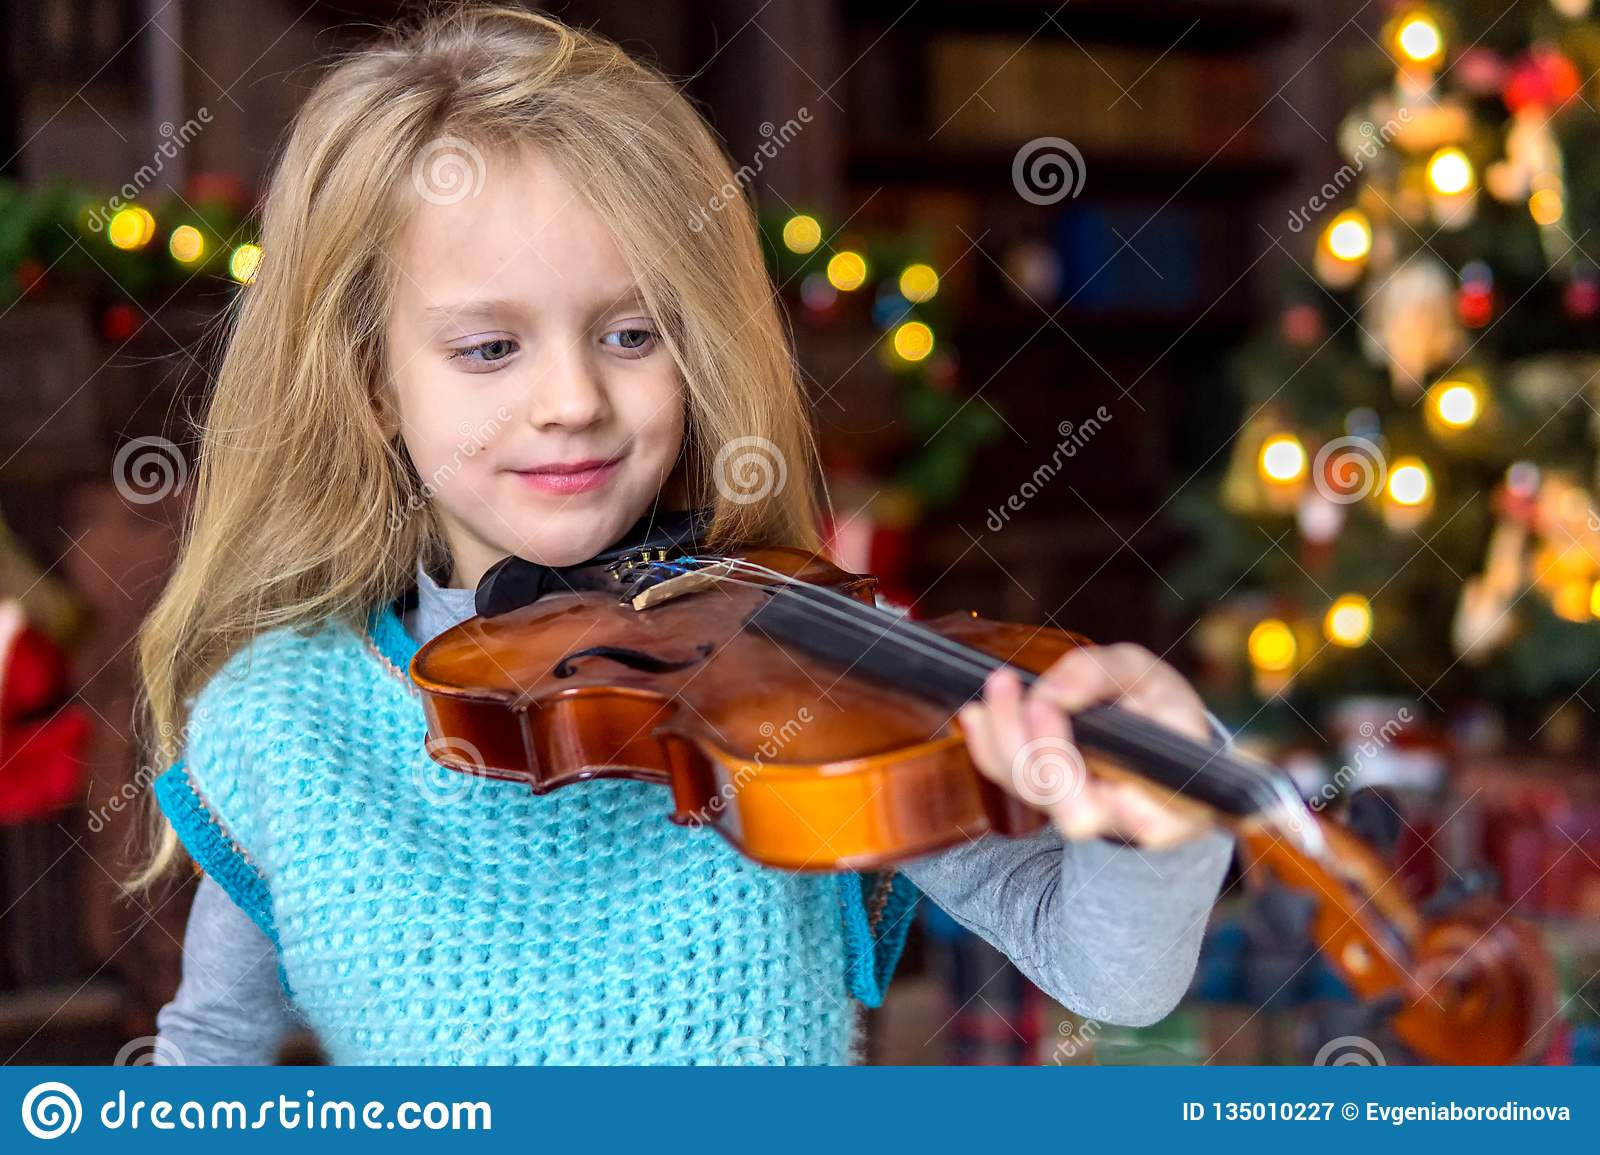 Cute Little Girl Learning To Play Violin Stock Image - Image